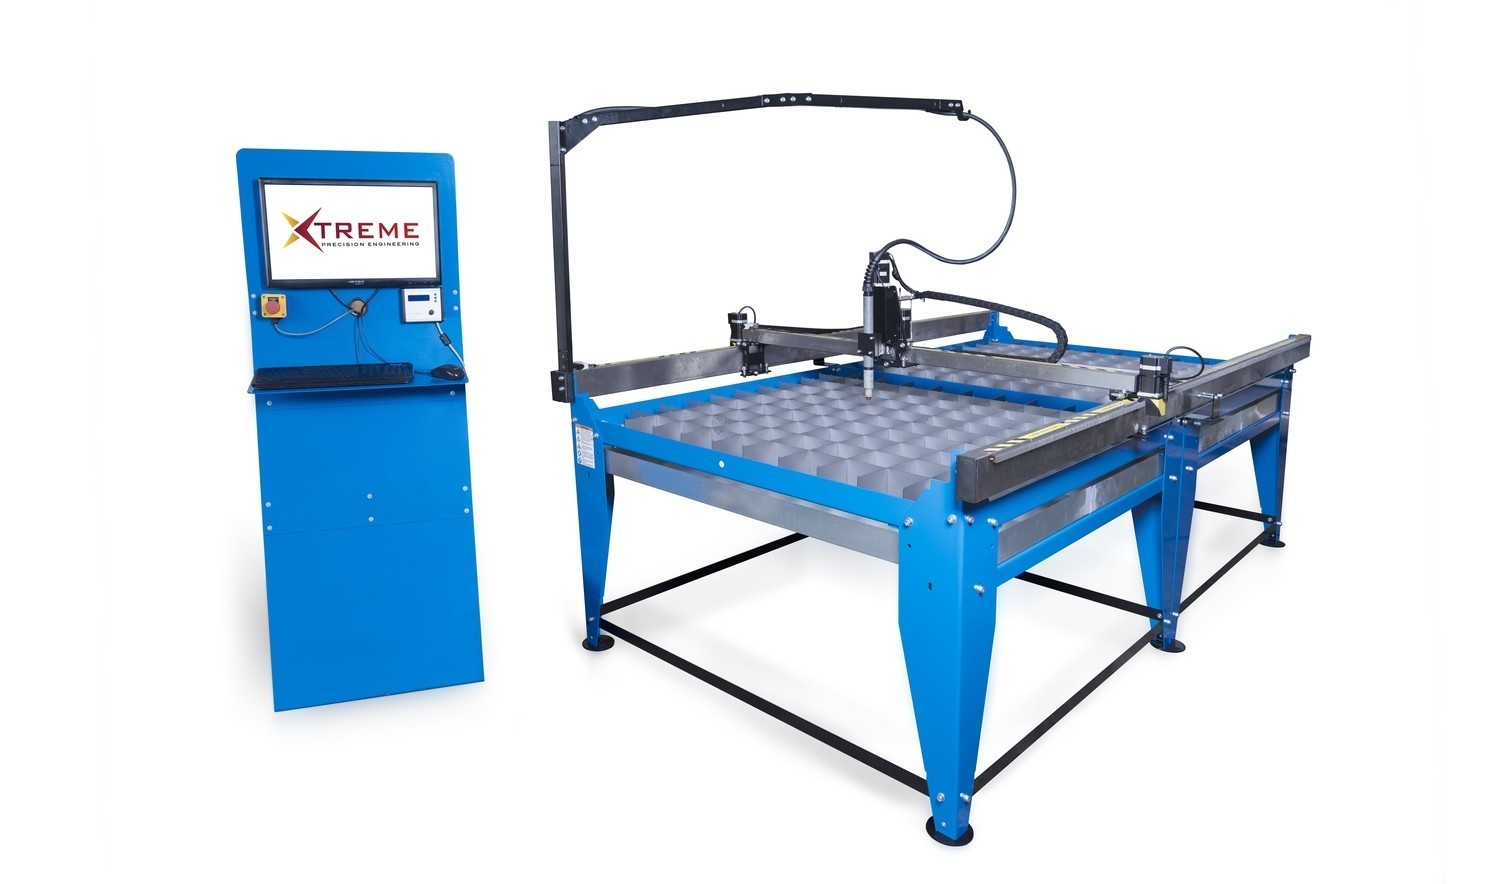 8x4 CNC Plasma Cutting Table (taking orders please contact for lead times)